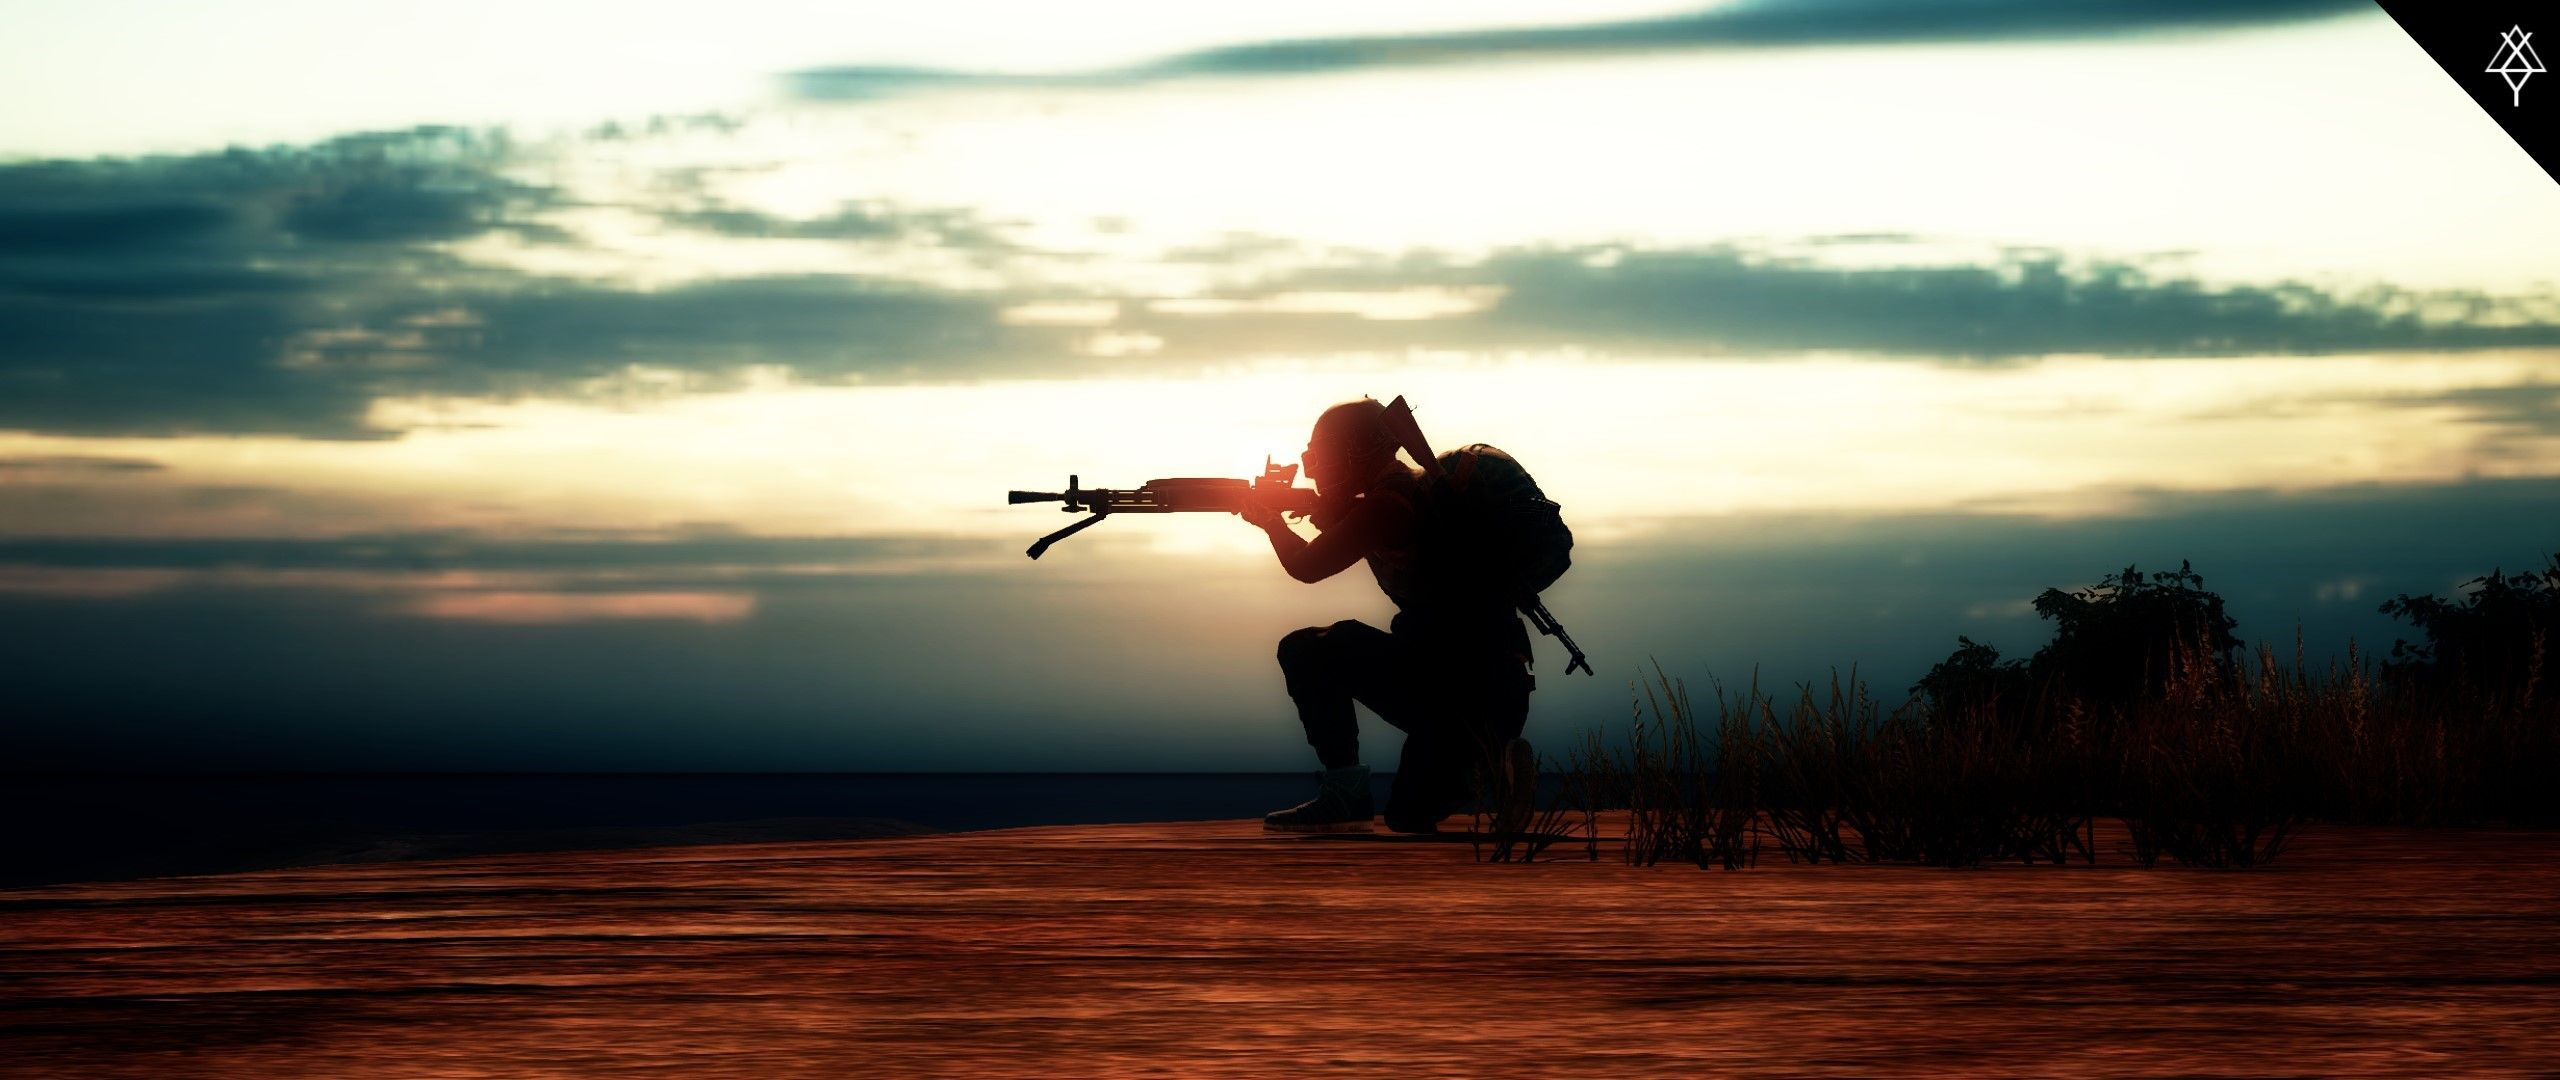 Gaming Wallpapers, Games E